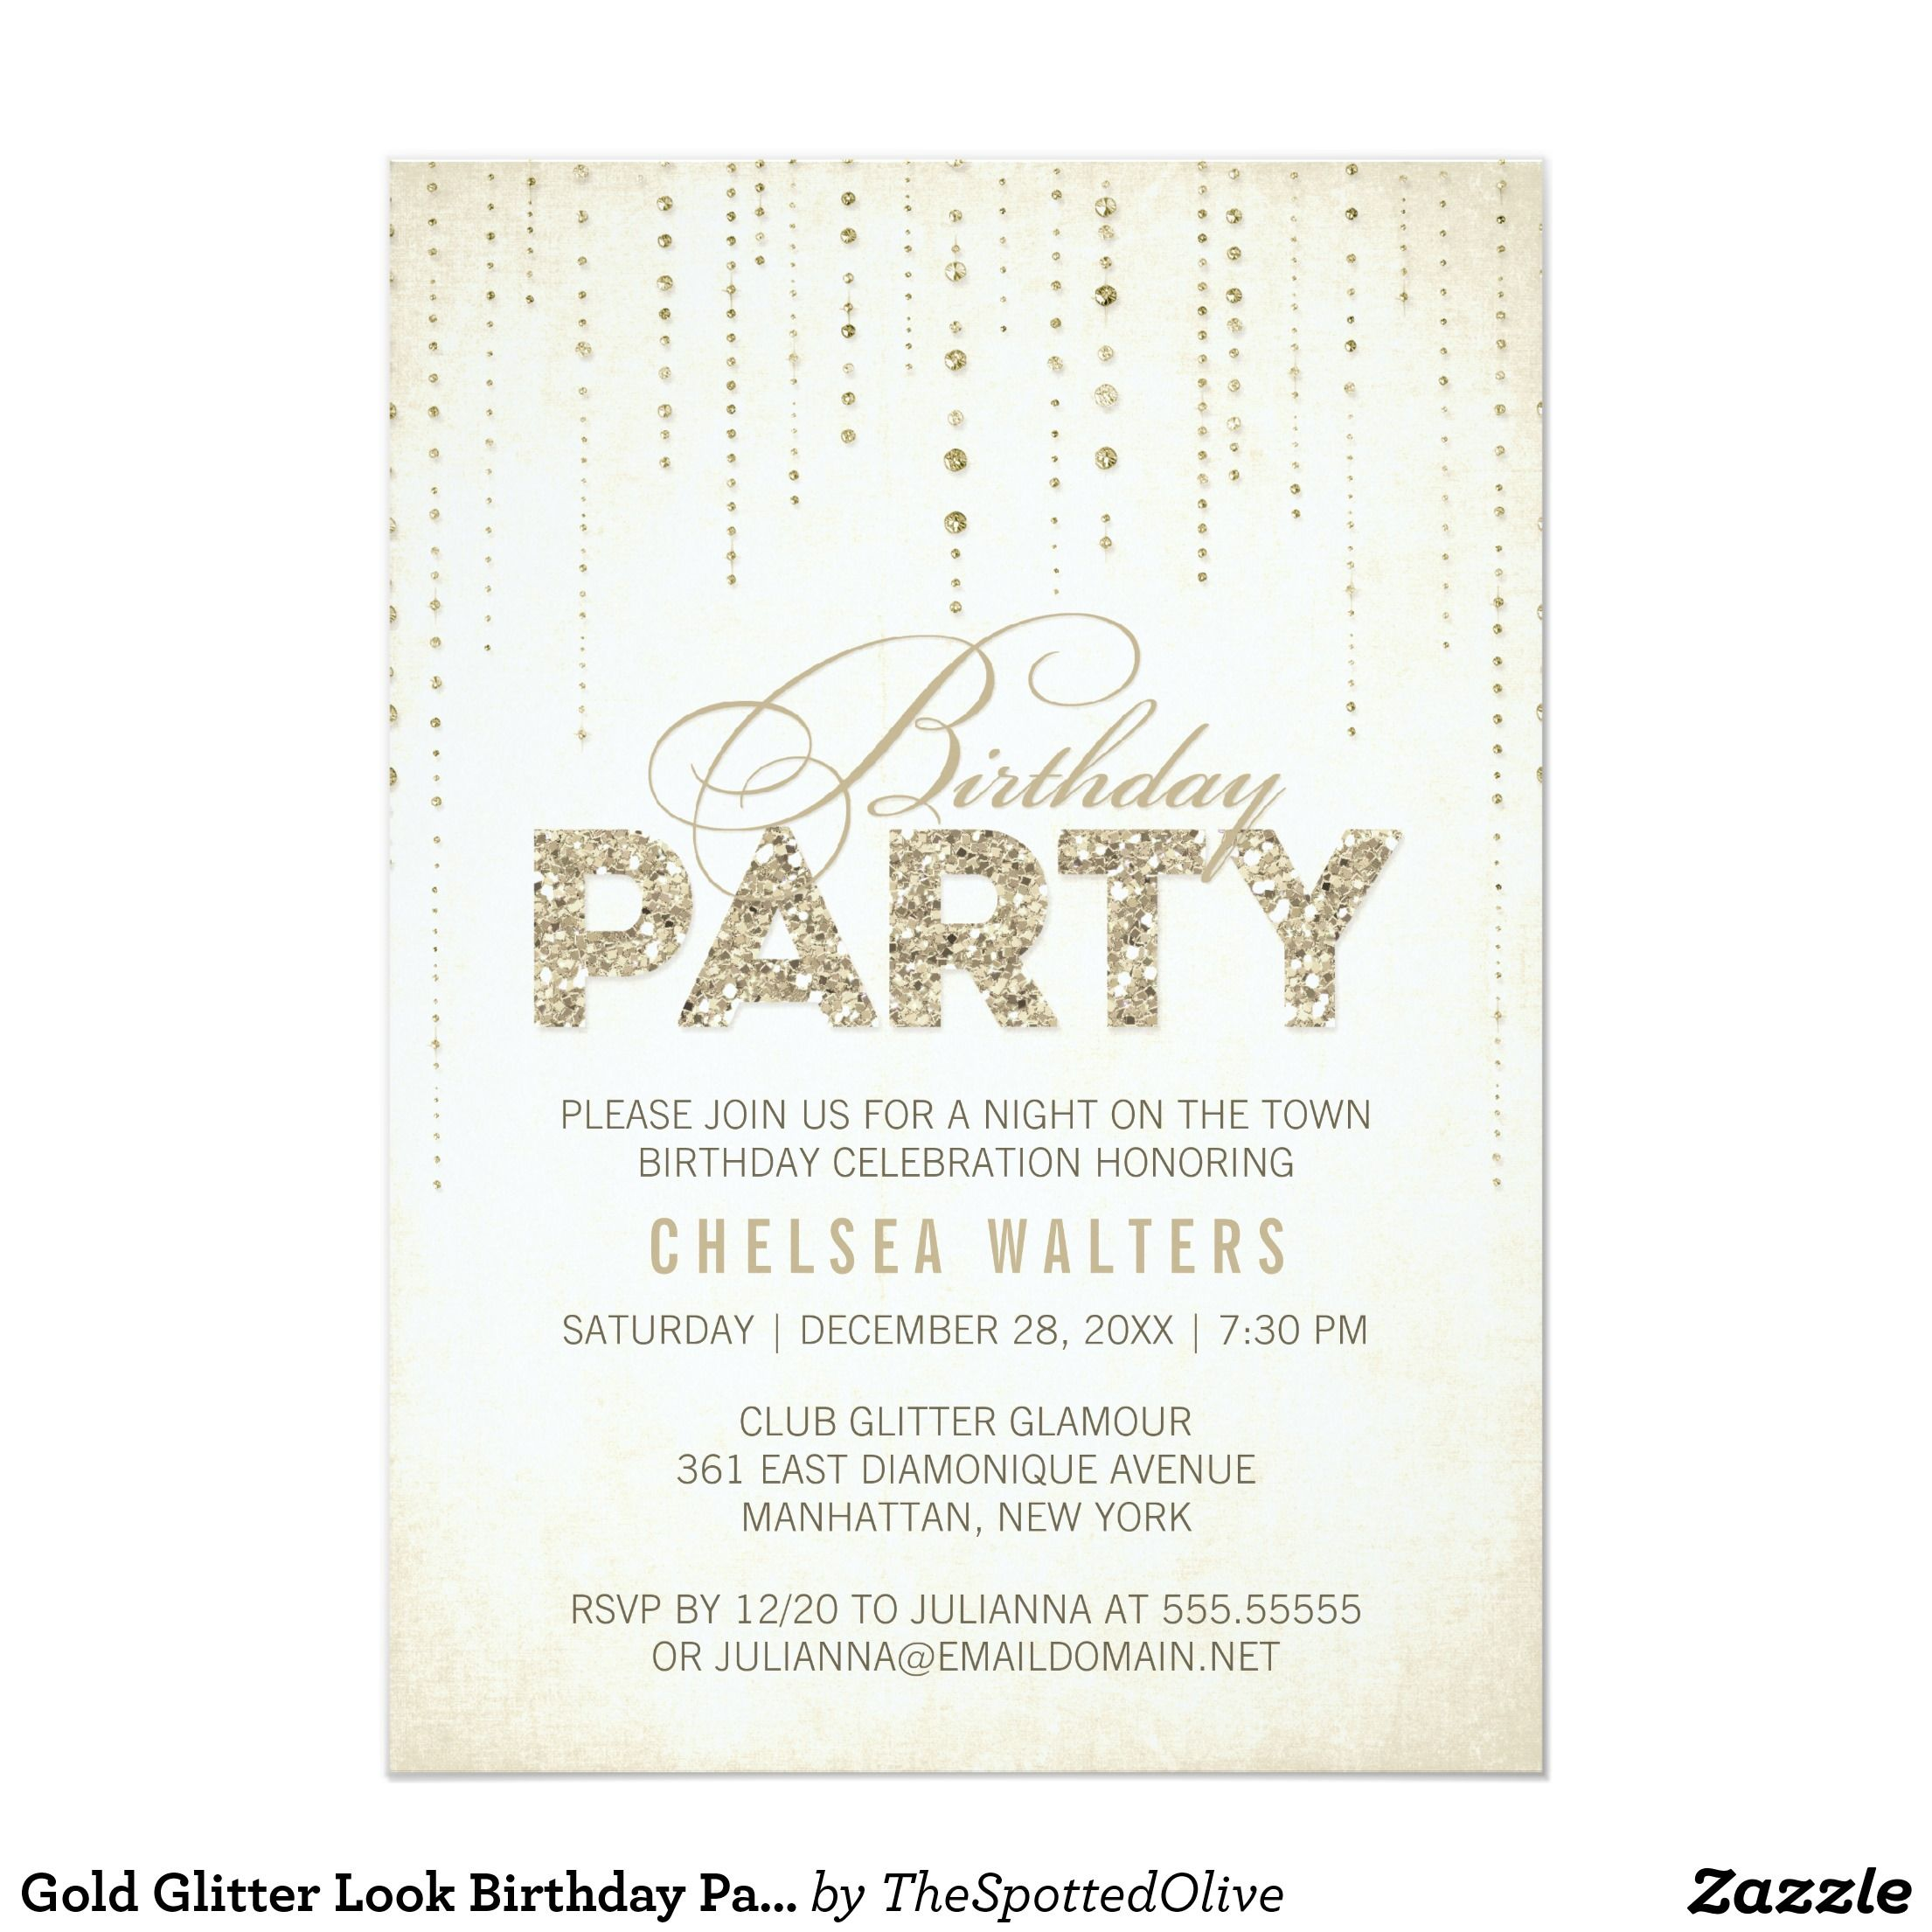 Gold glitter look birthday party card gold glitter and birthdays gold glitter look birthday party 5x7 paper invitation card filmwisefo Image collections